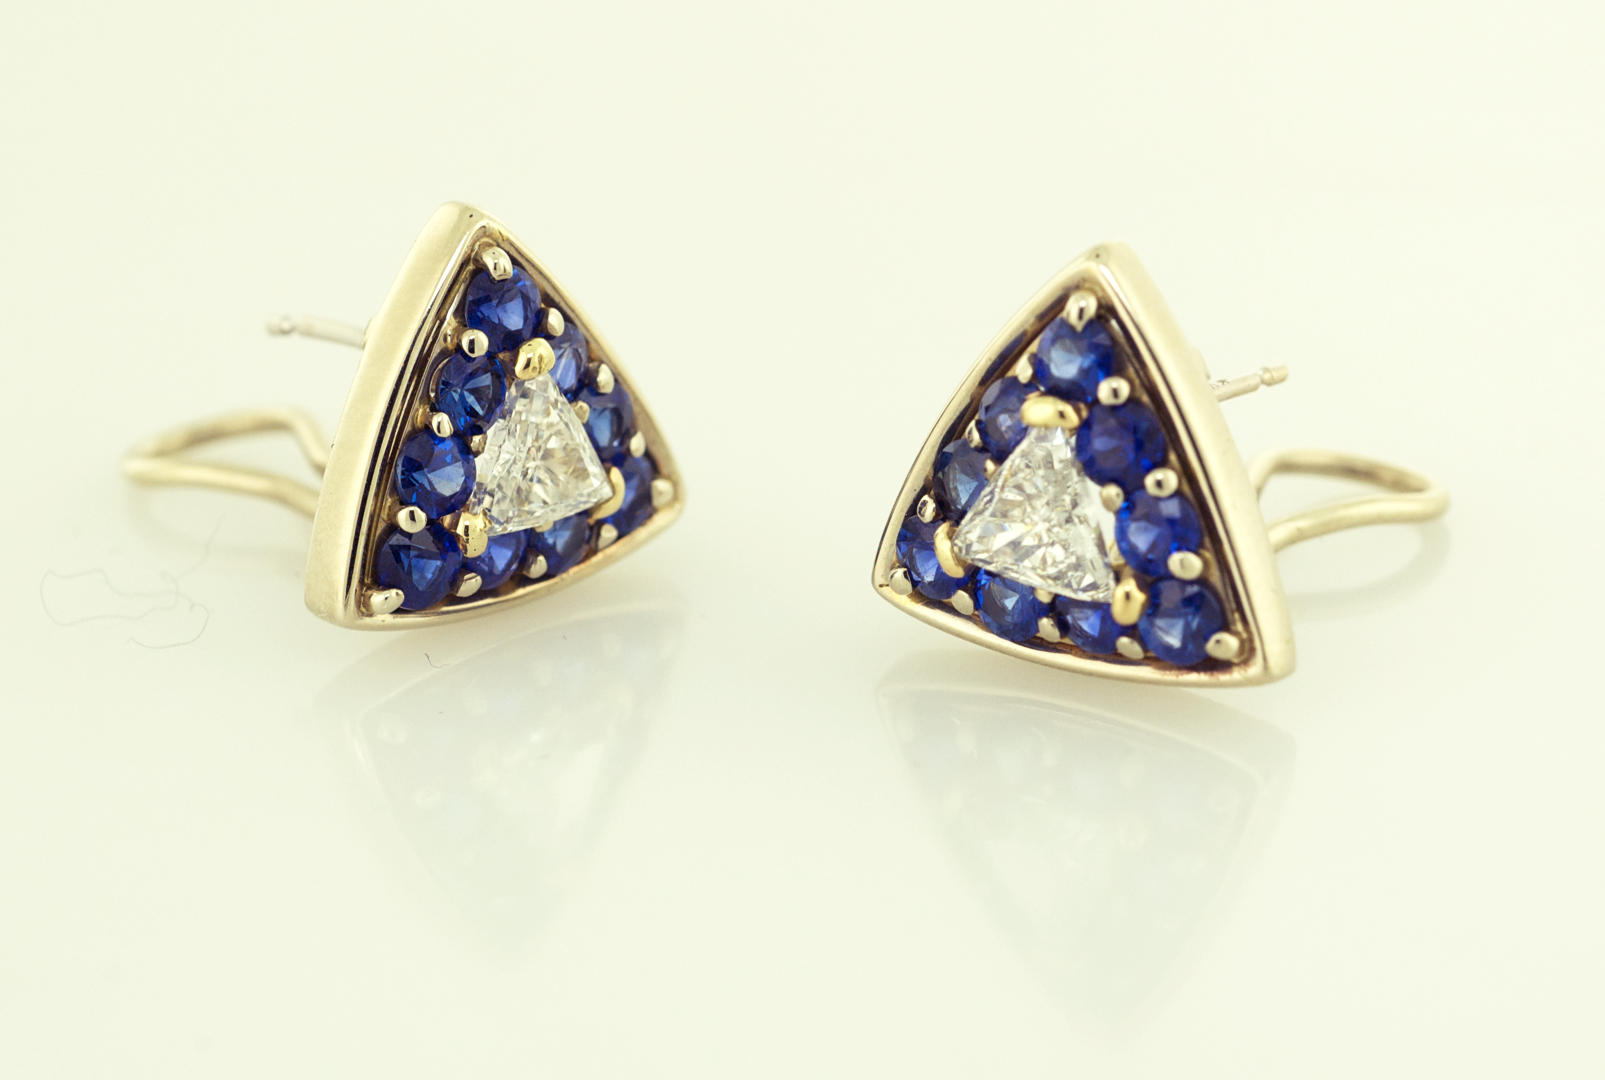 Diamond and Sapphire Earrings set with Trillian Shape Diamonds and Round Diam